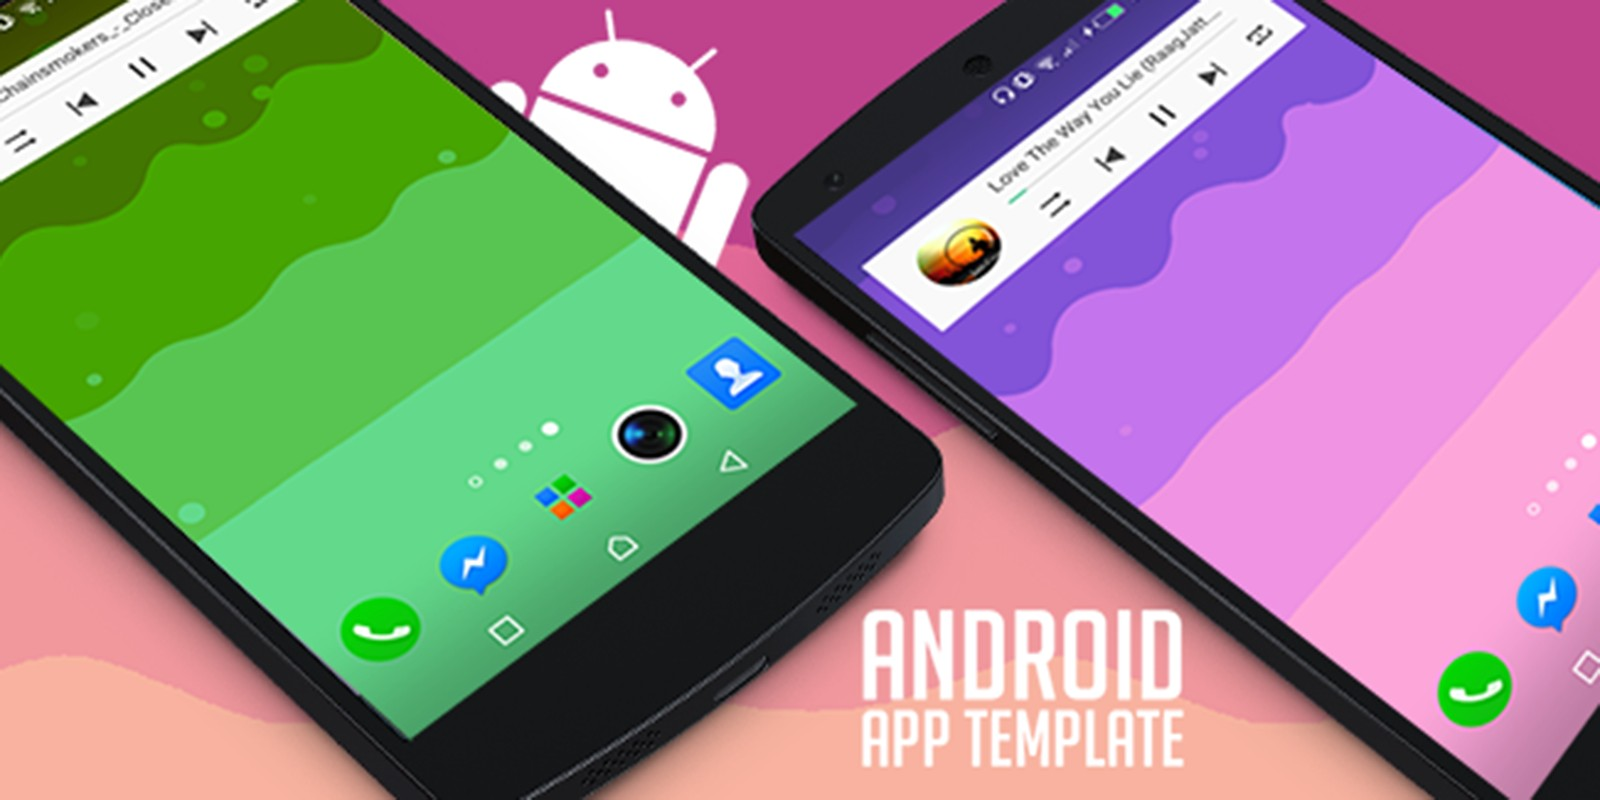 Wavie Music Live Wallpaper Android Template By Browsesimply